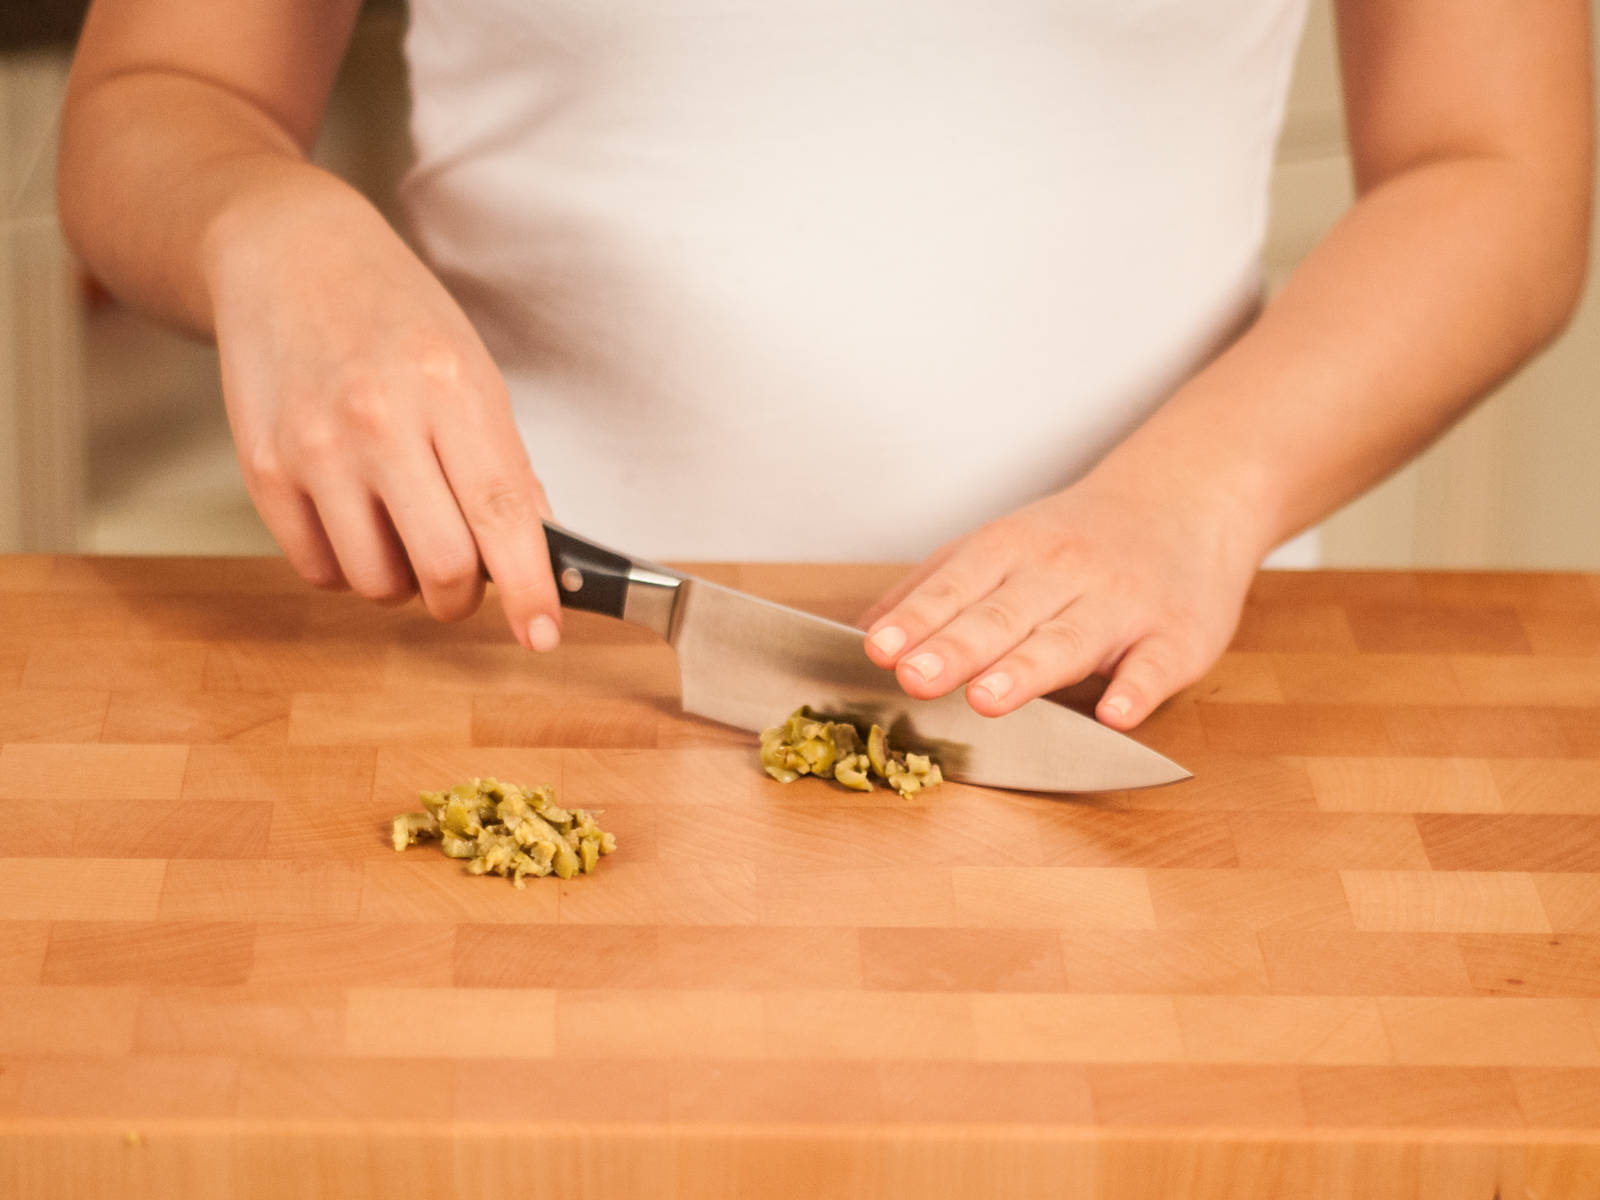 Roughly chop green olives.